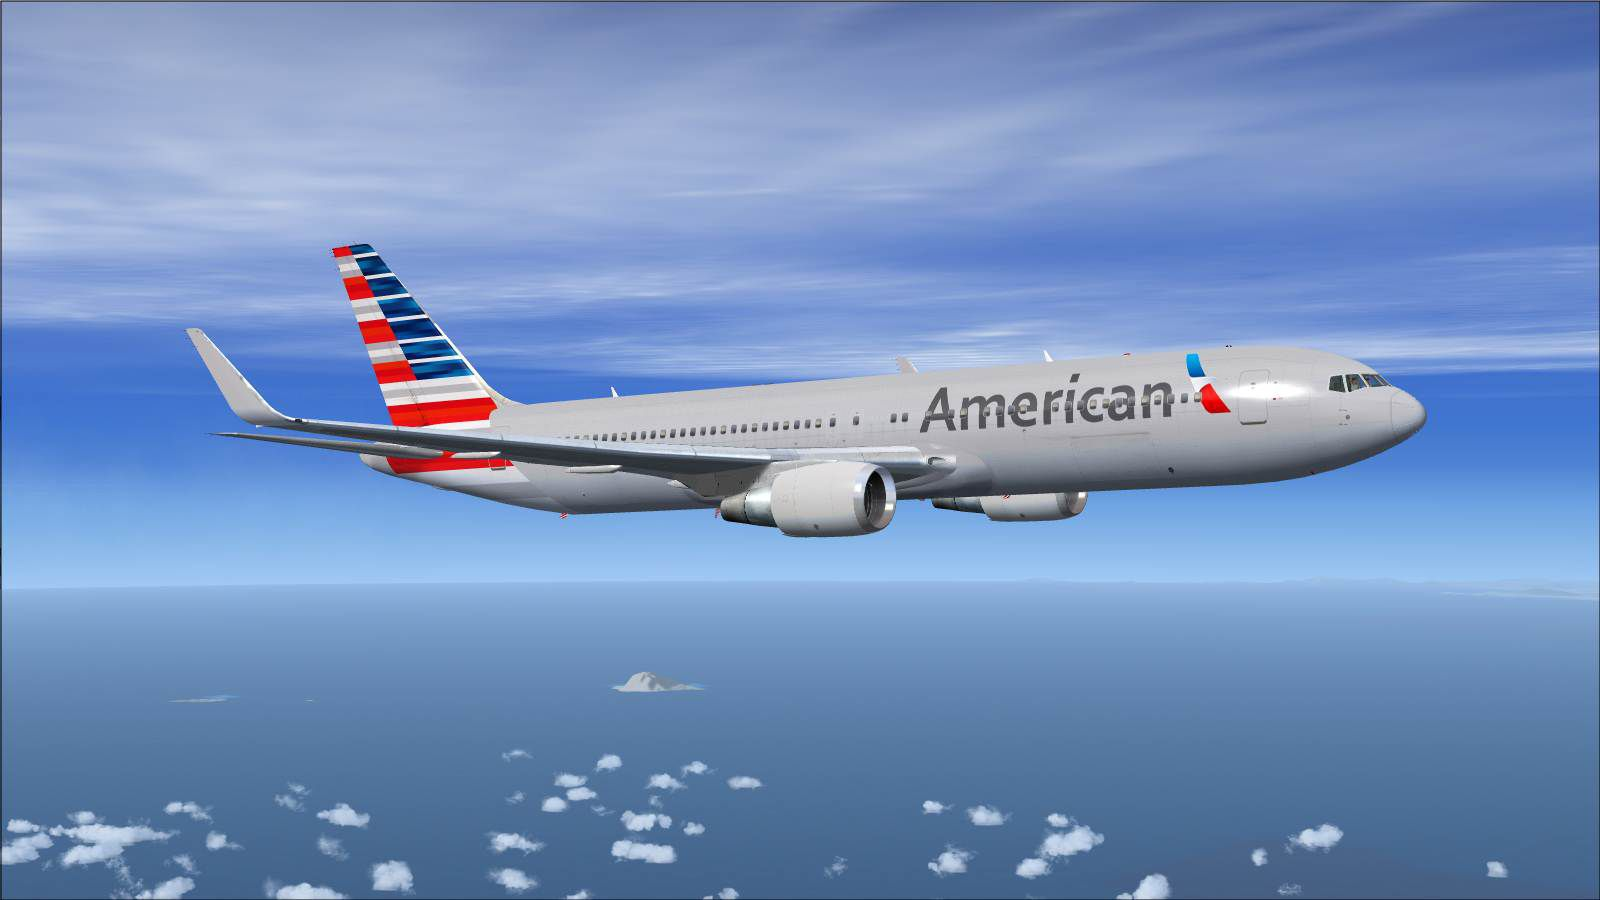 Fsx Wallpaper Hd American Airlines Boeing 767 300wl For Fsx